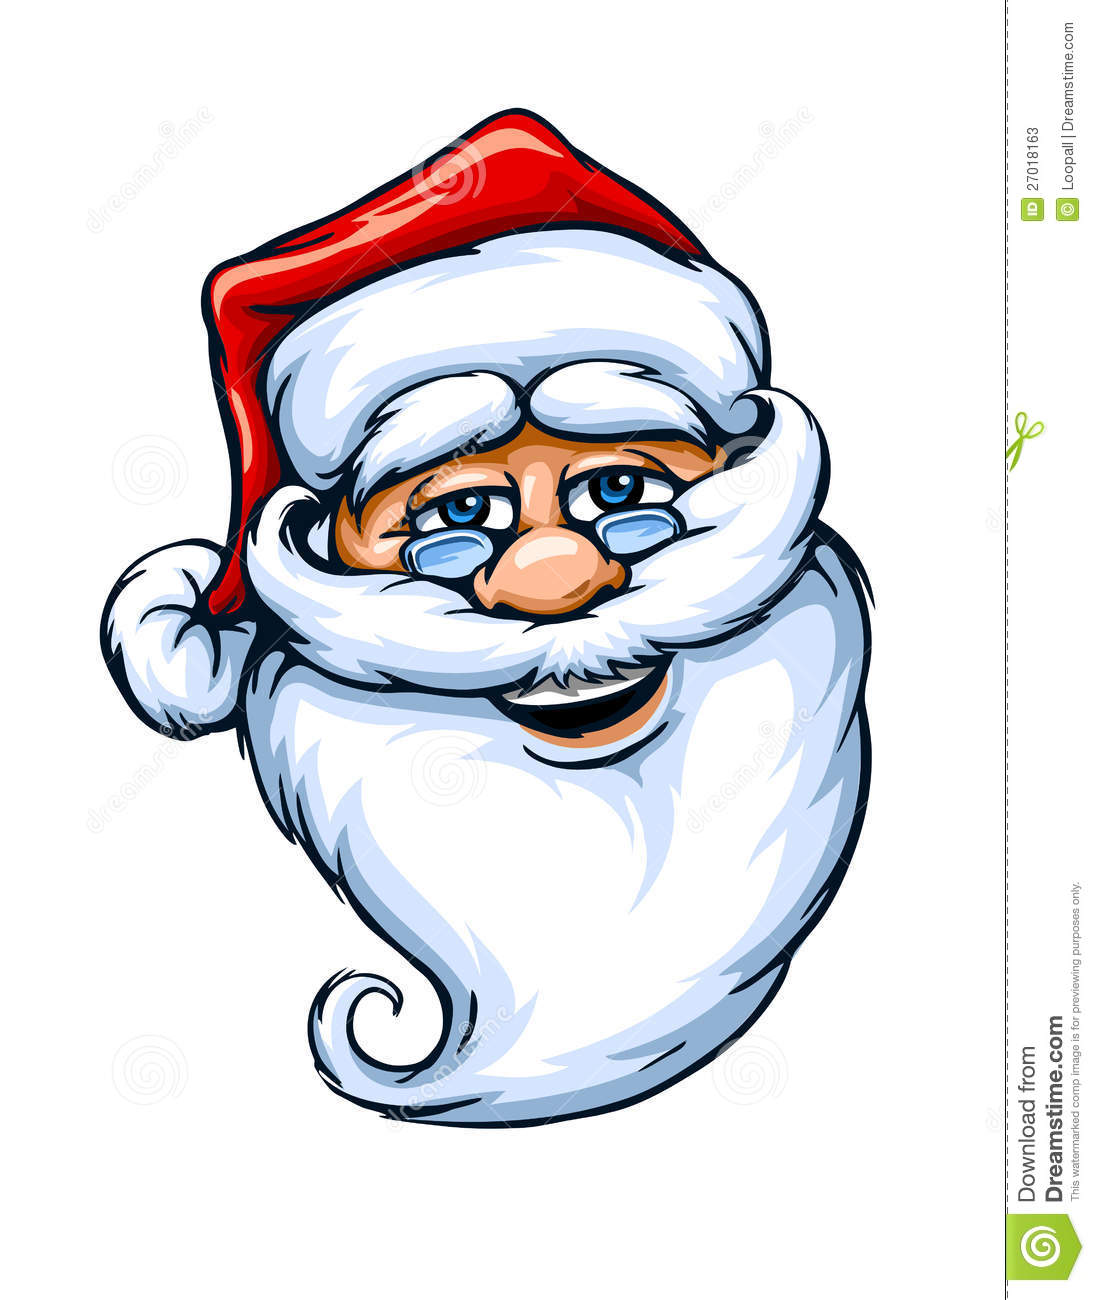 Smiling Santa Claus face vector illustration isolated on white ...